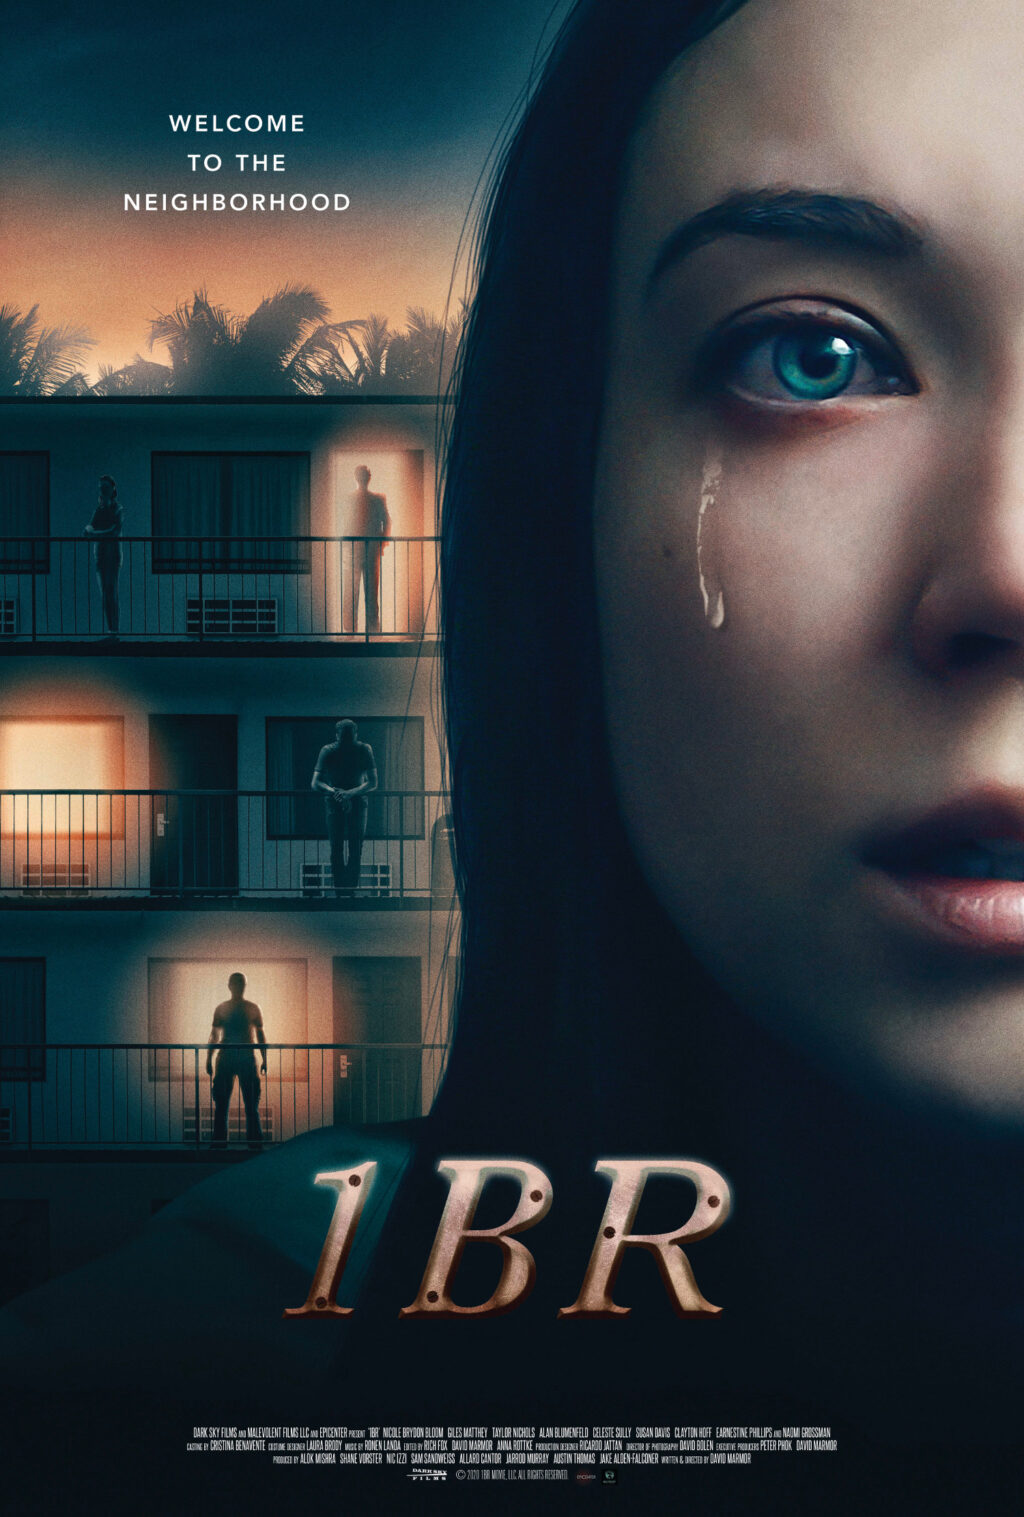 1BR Theatrical Poster 300dpi 5x7 1 1024x1517 - Trailer & Poster Premiere: Dark Sky Films Brings 1BR to Theaters and Digital 4/24